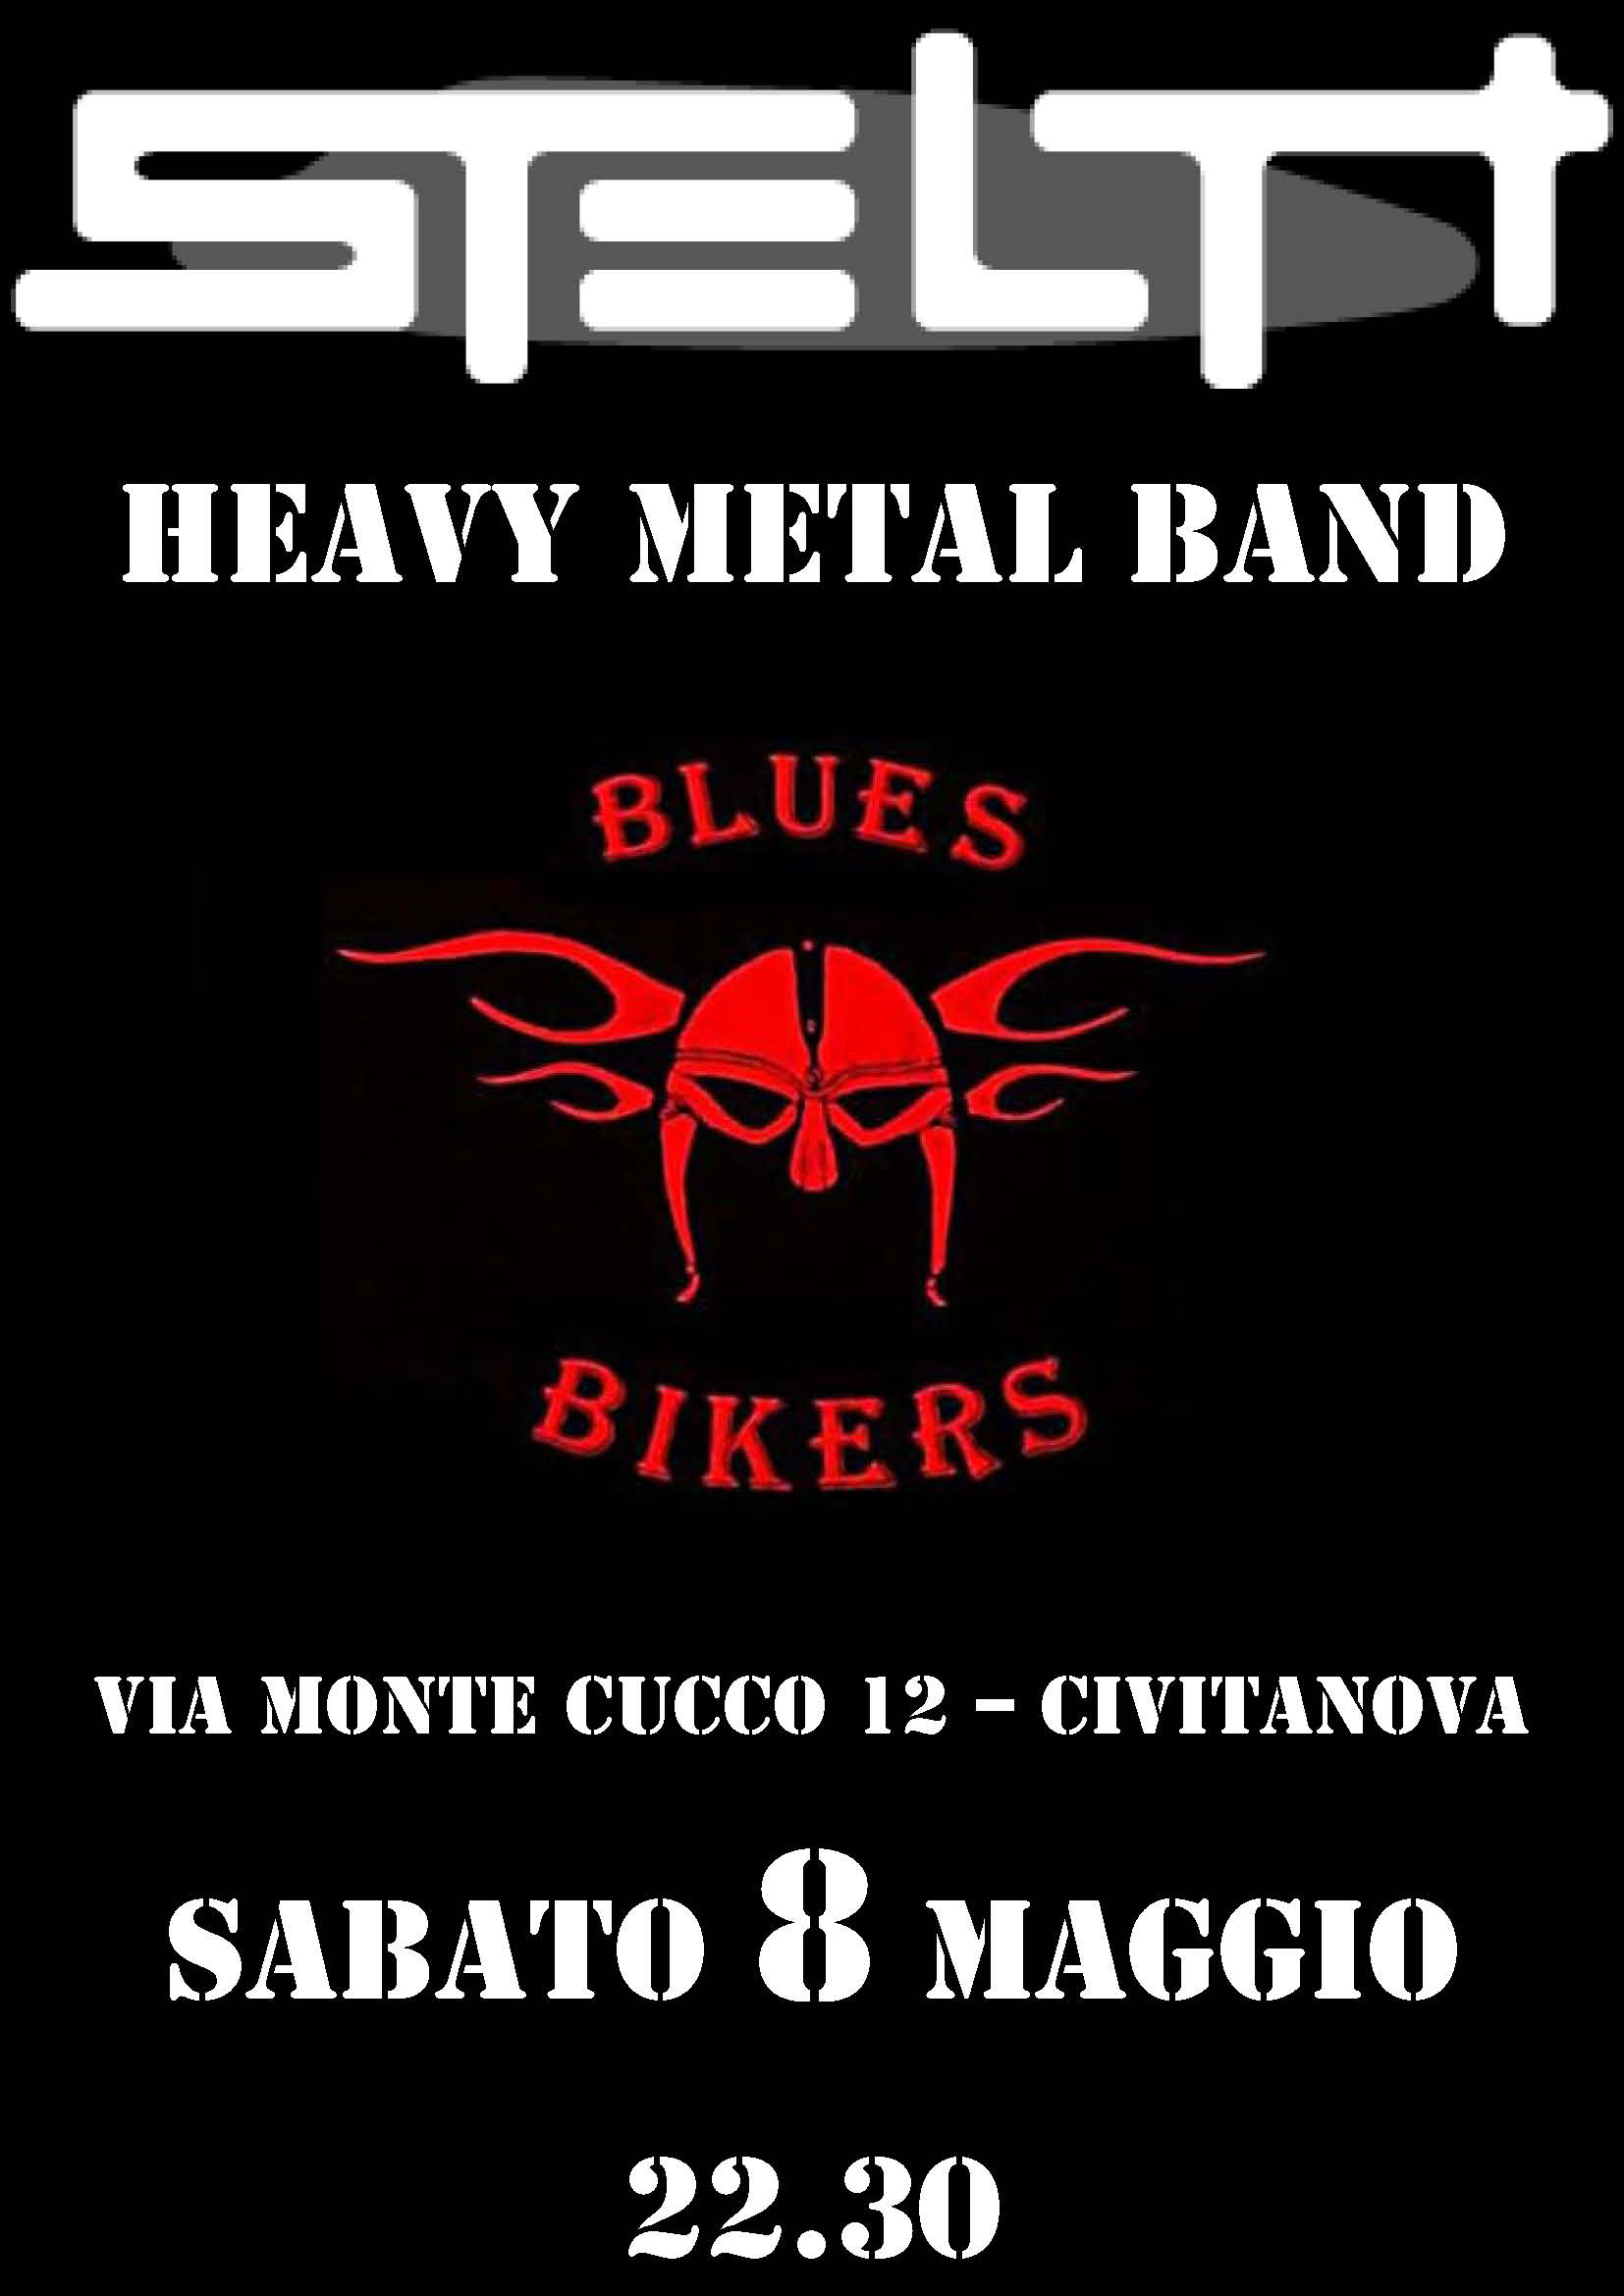 Live@Blues Bikers, Marche, Italy - 8.5.2010